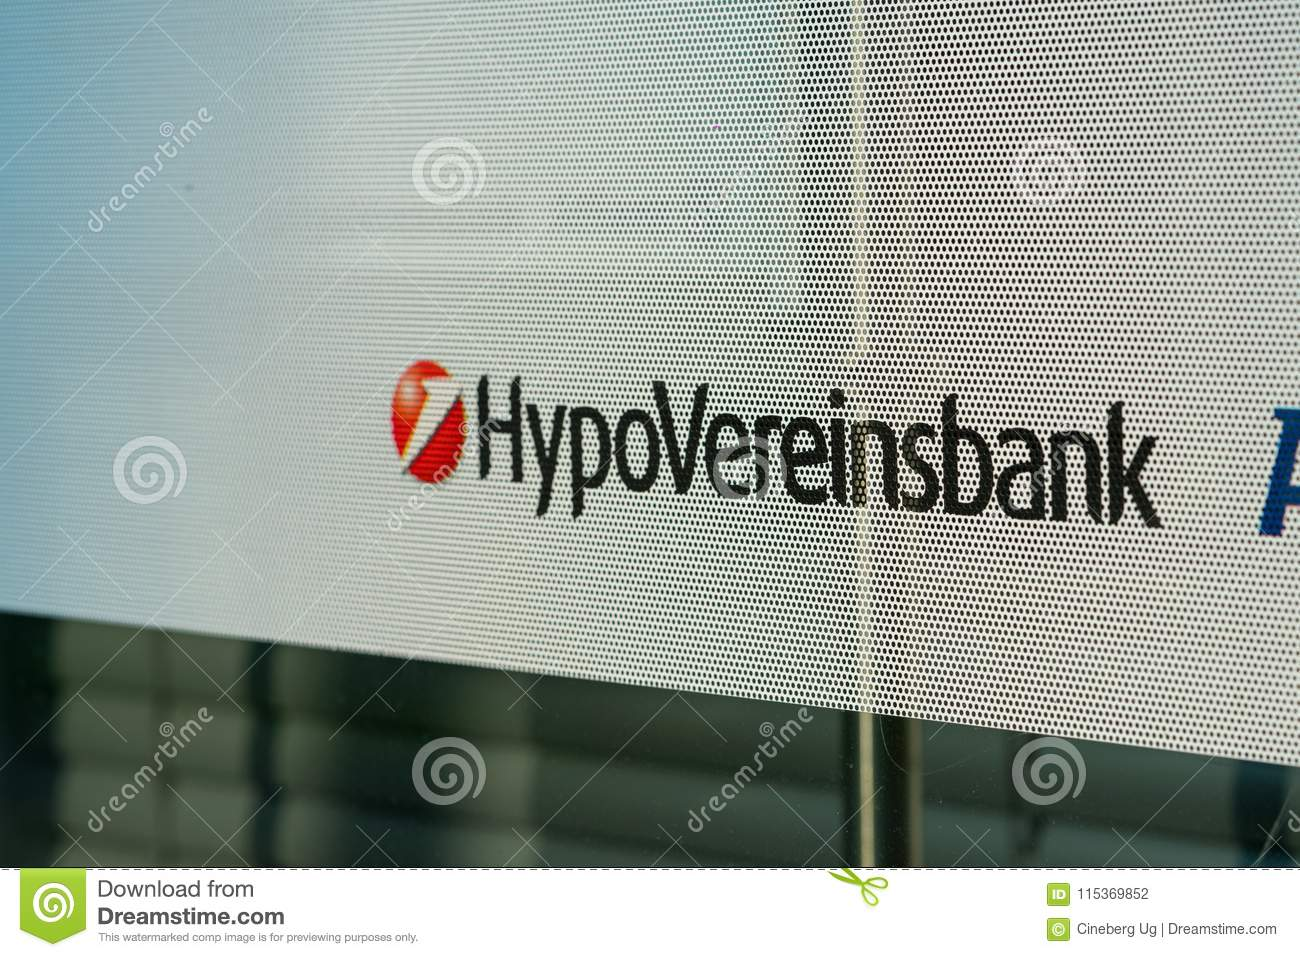 Hypovereinsbank Bank Branch Editorial Photography - Image of german